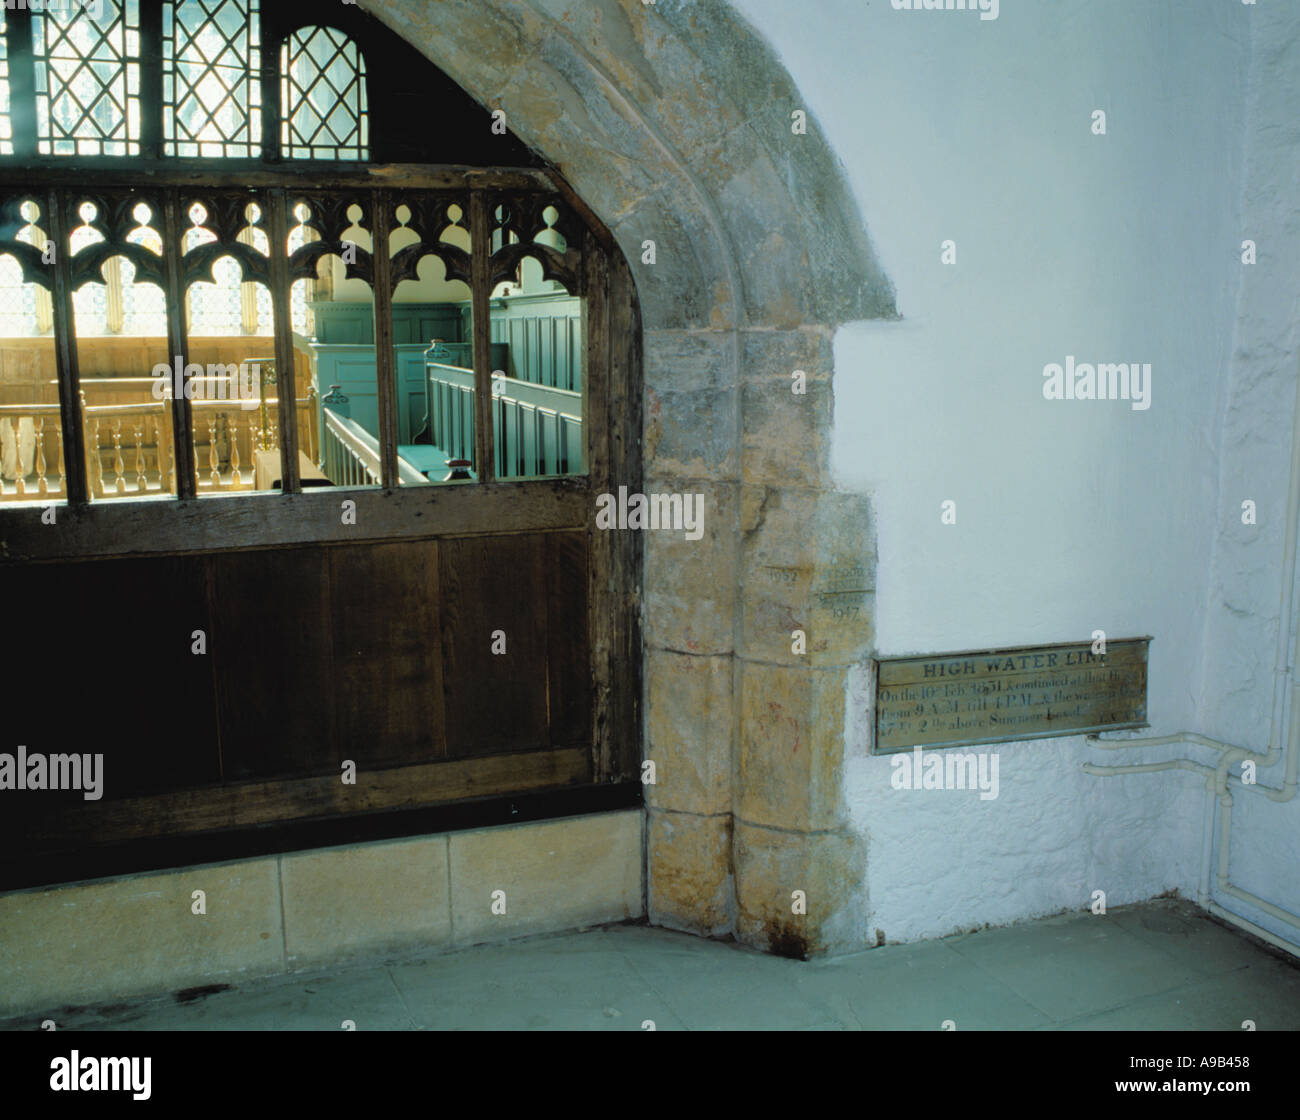 Flood level marks in the ancient Chapel, Merchant Adventurers Hall, Fossgate, City of York, North Yorkshire, England, UK. - Stock Image